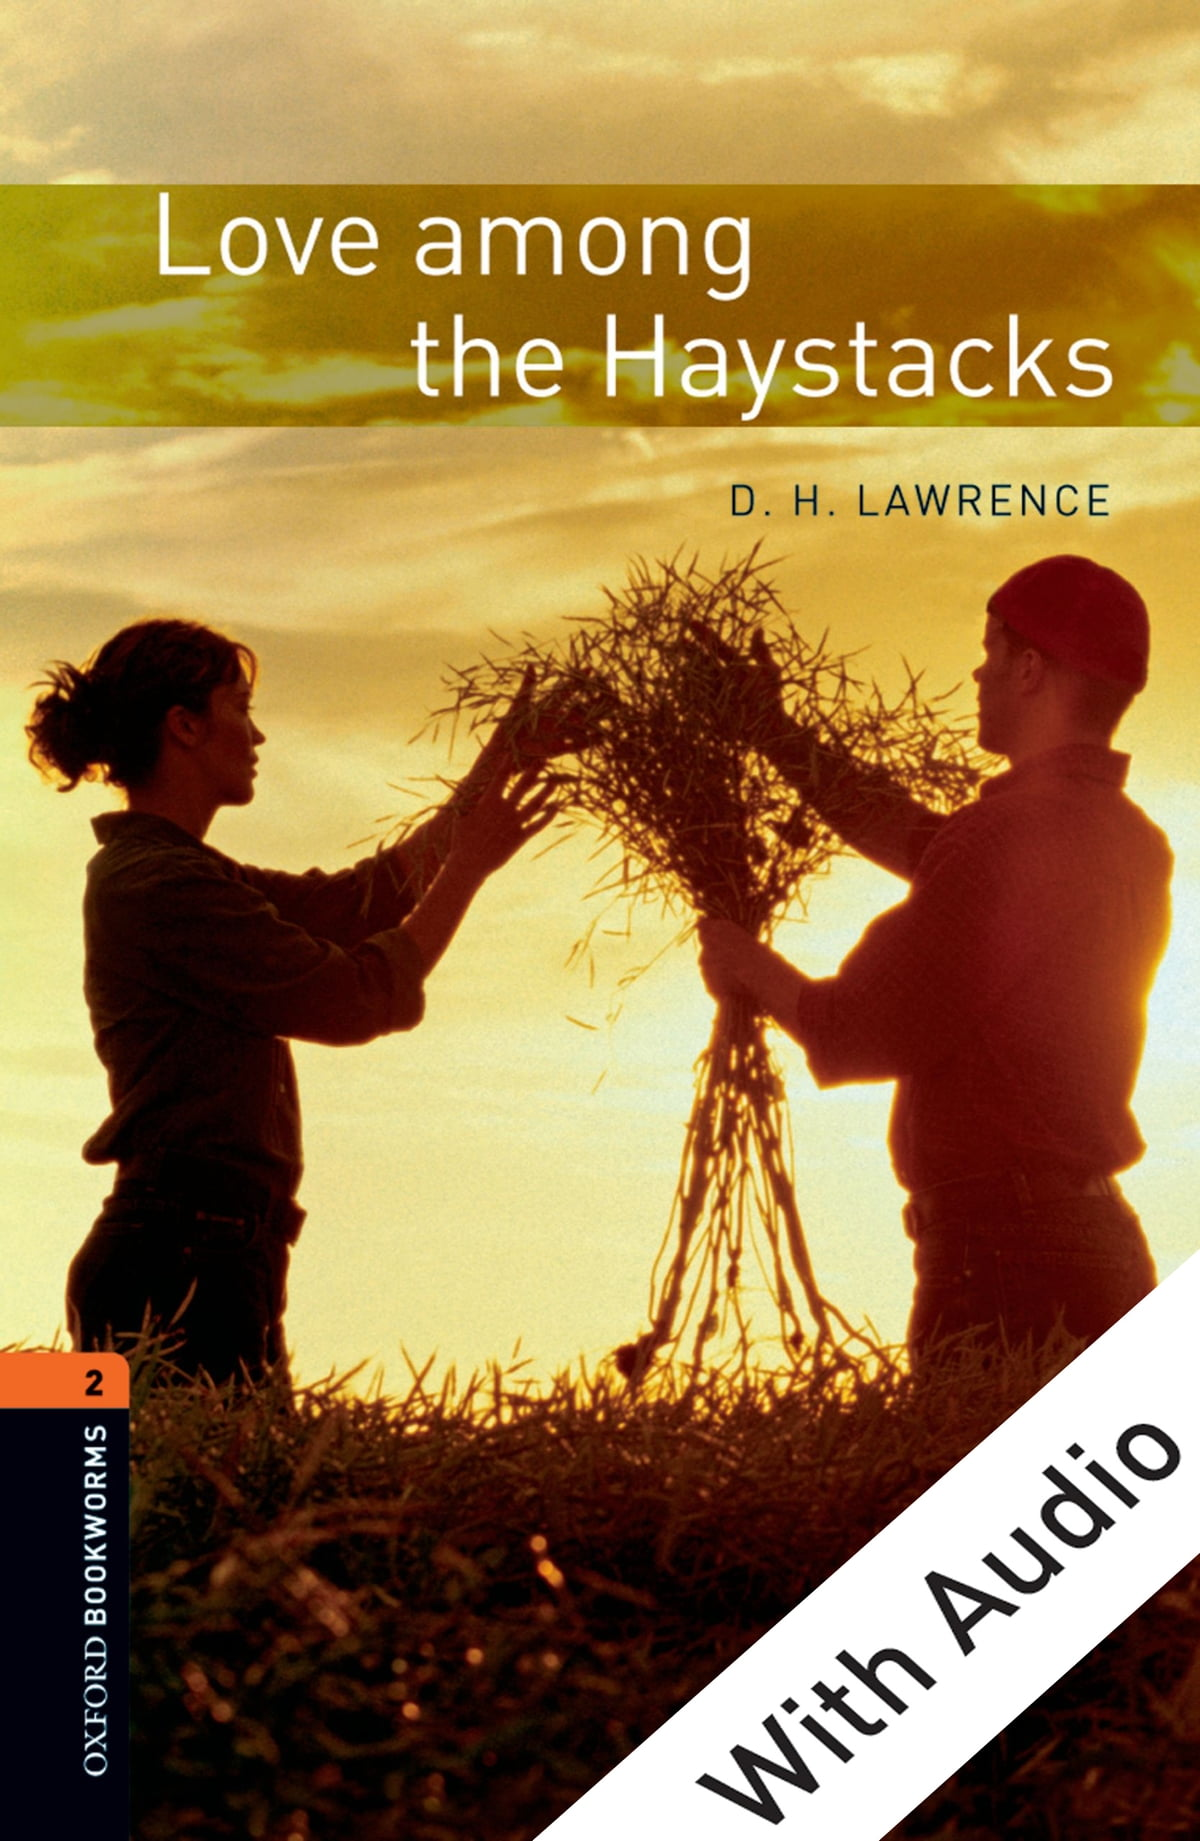 Love Among The Haystacks  With Audio Level 2 Oxford Bookworms Library Ebook  By D H Lawrence  9780194631808  Rakuten Kobo